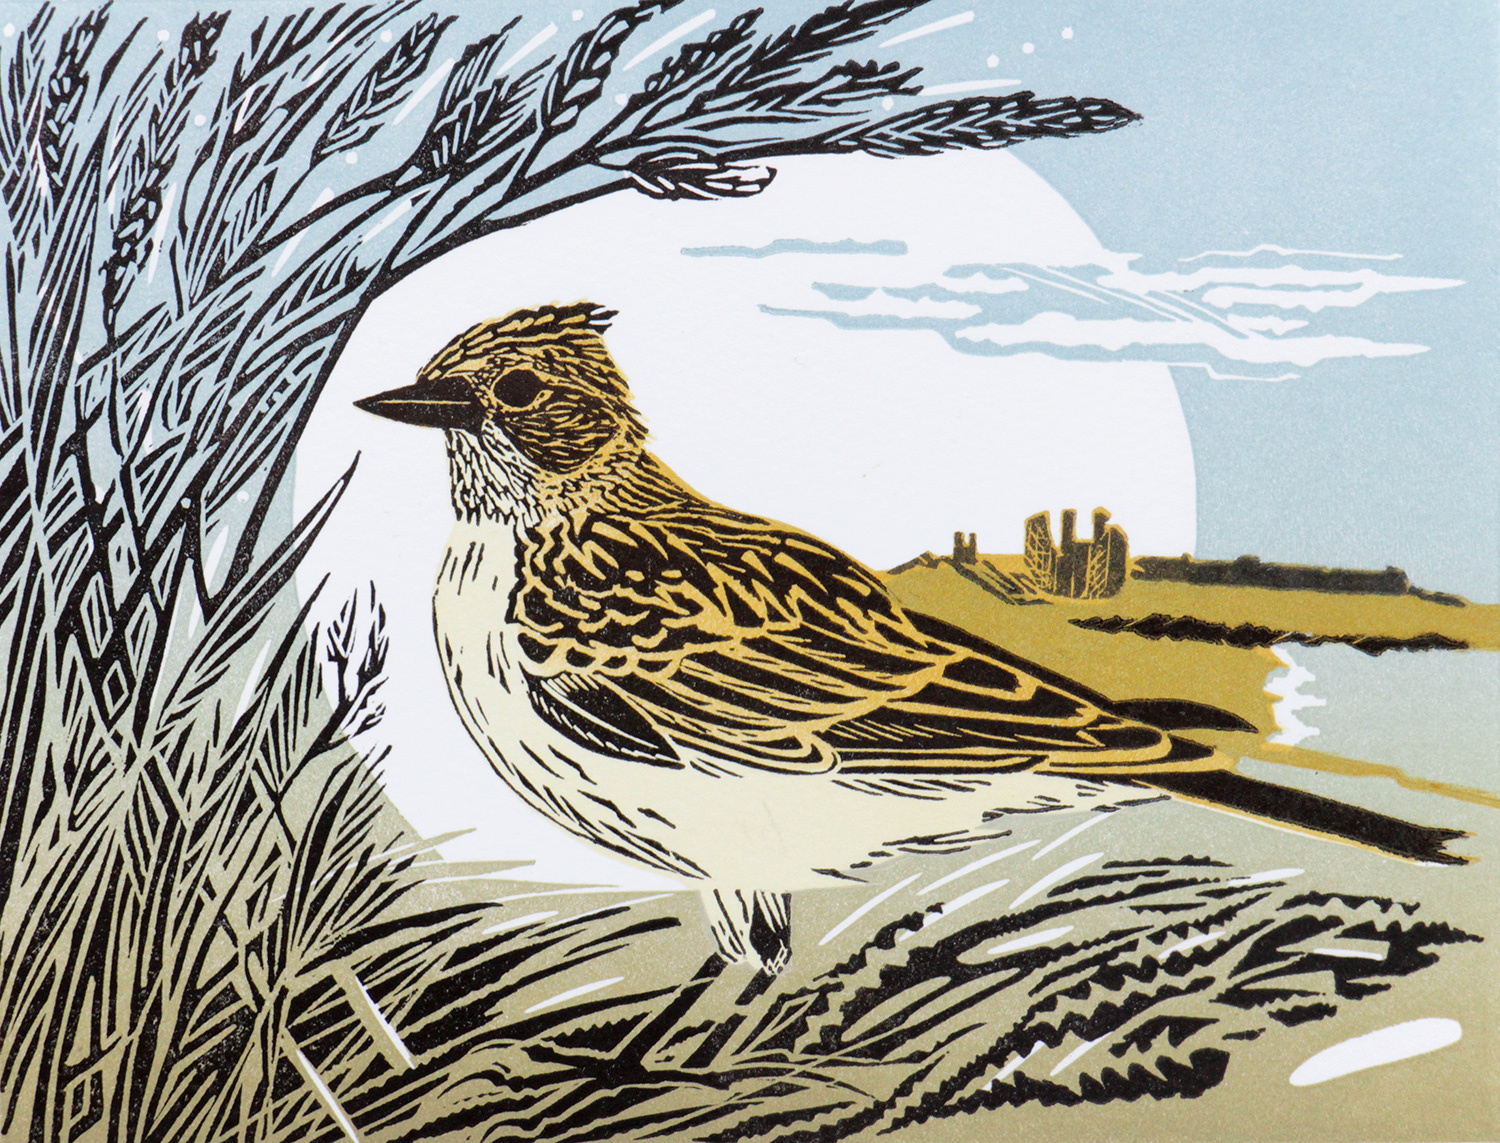 Skylark by Pam Grimmond